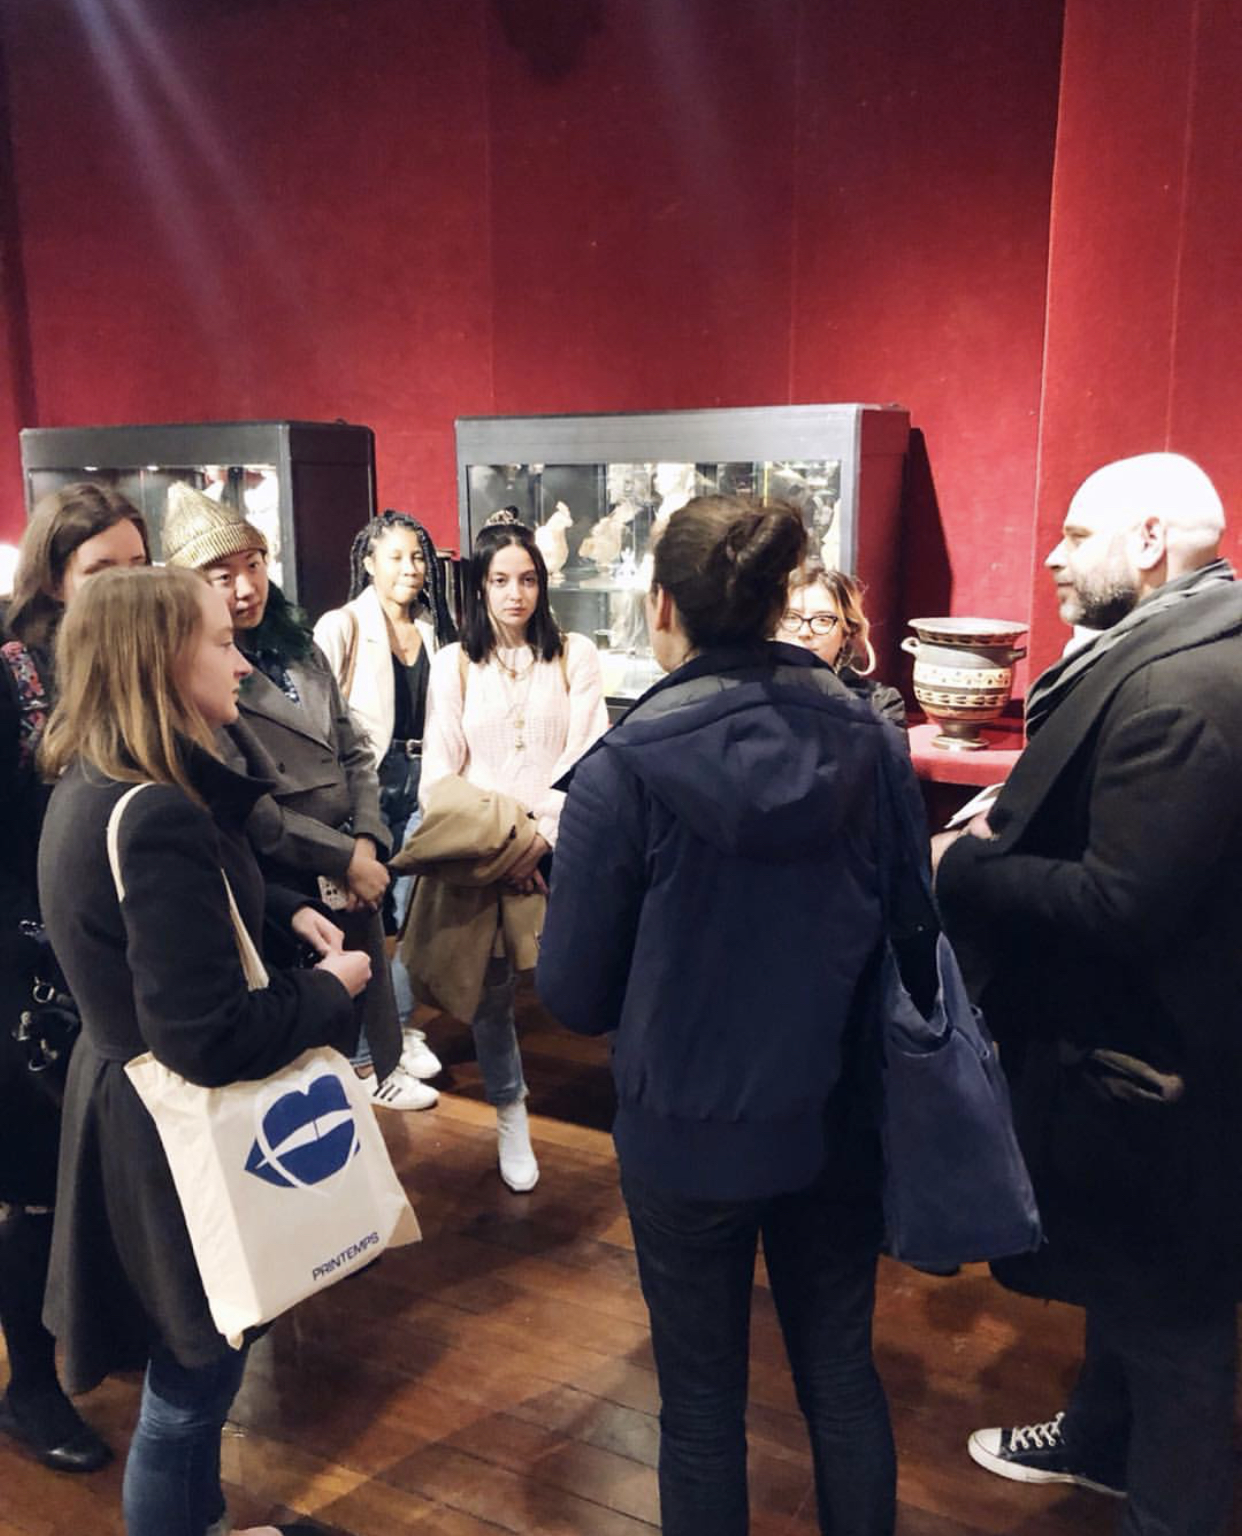 Guest Lecture by Alexandra Jaffre and Visit to the Drouot Auction House